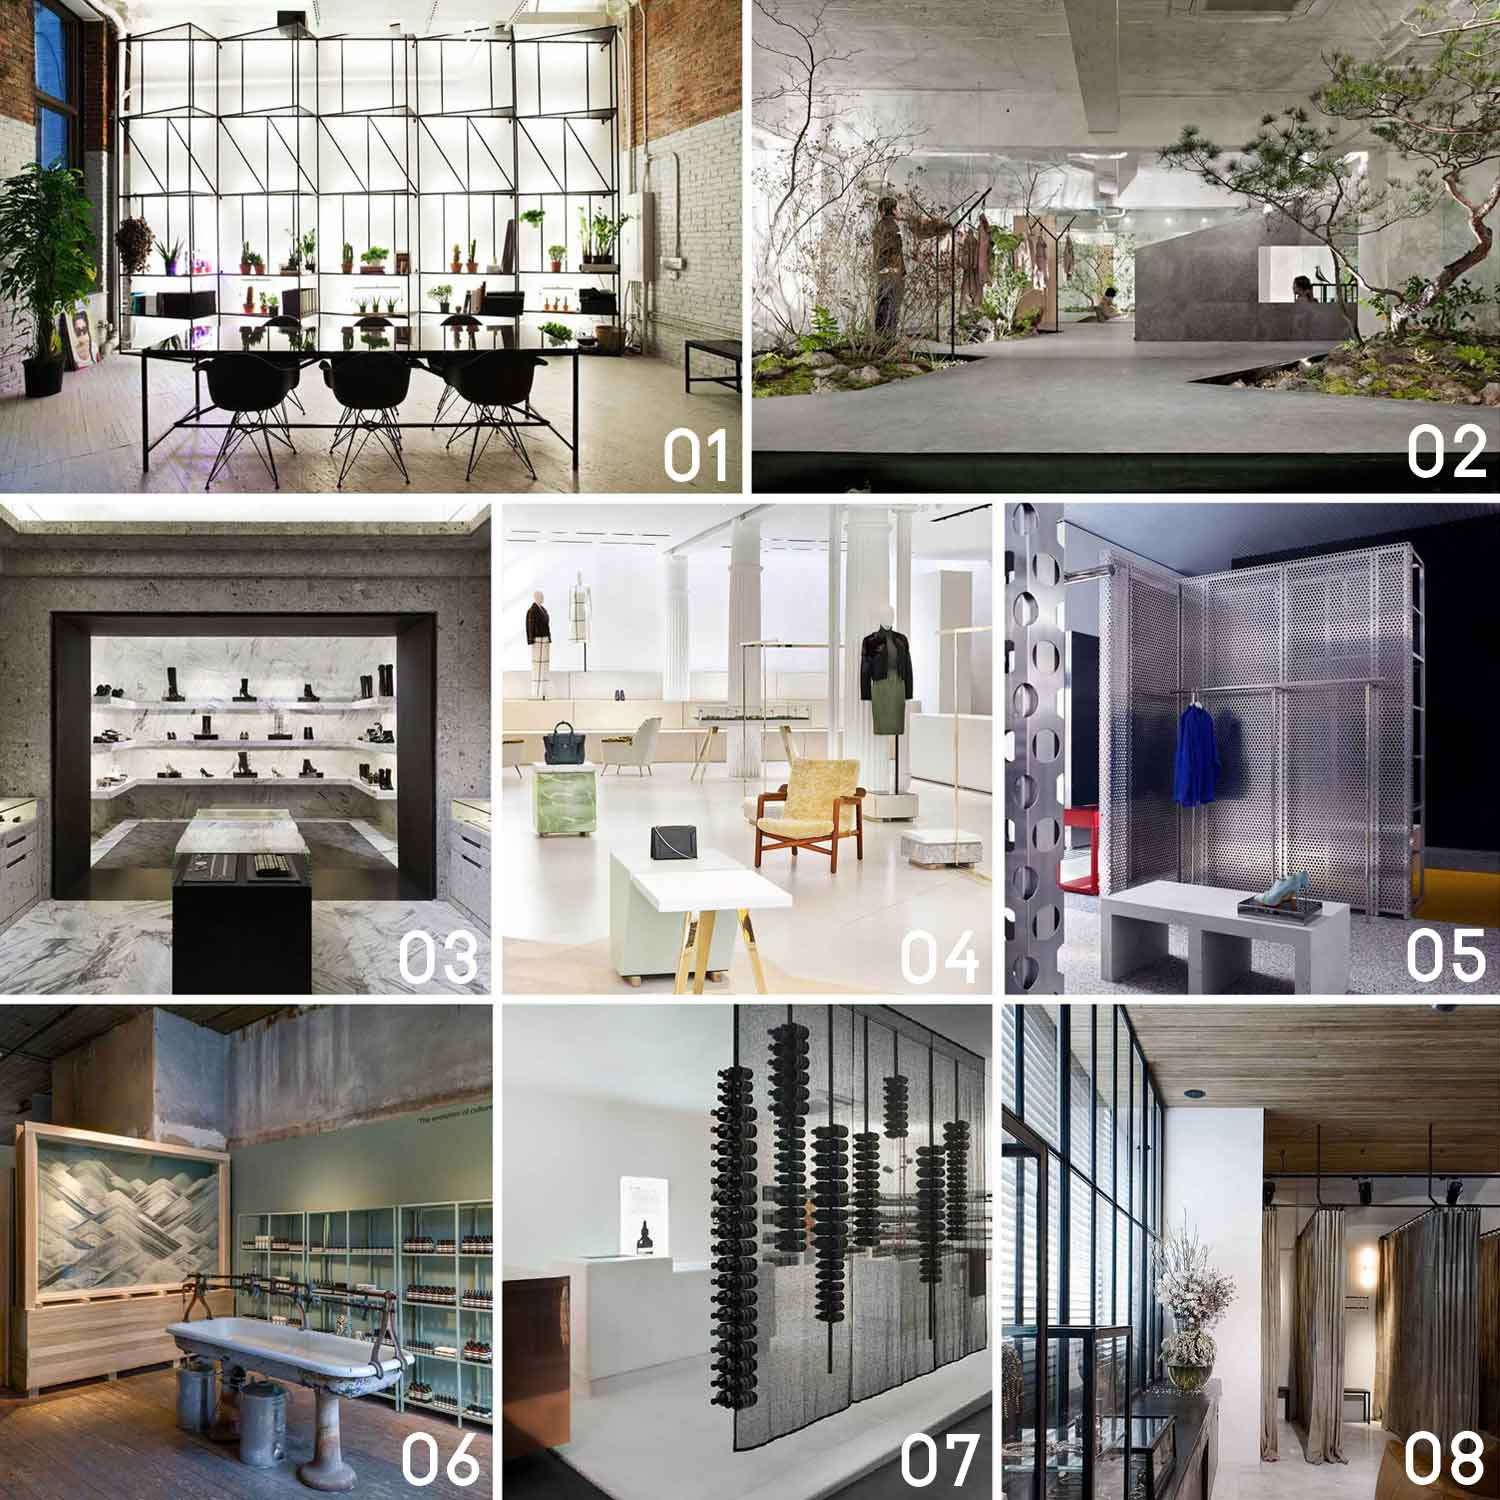 Commercial retail interior design 2014 yellowtrace for Retail interior design